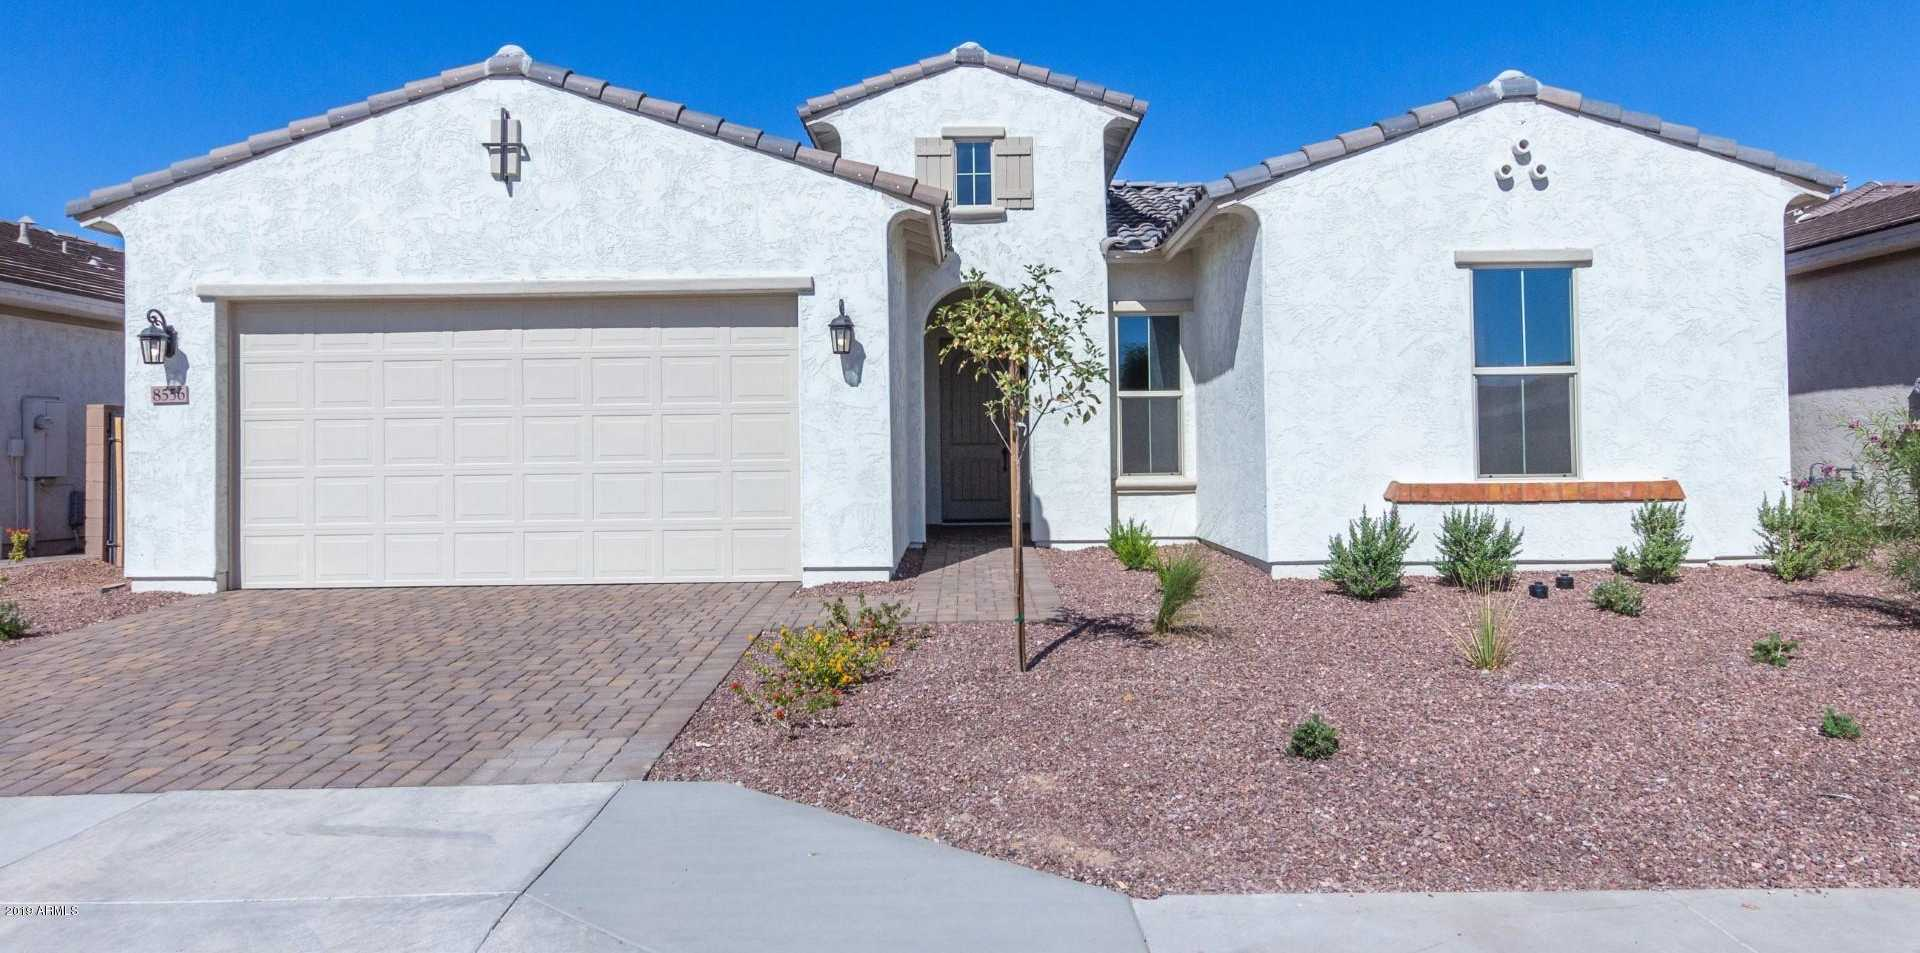 $409,337 - 4Br/4Ba - Home for Sale in Garden Grove Expedition Collection, Glendale